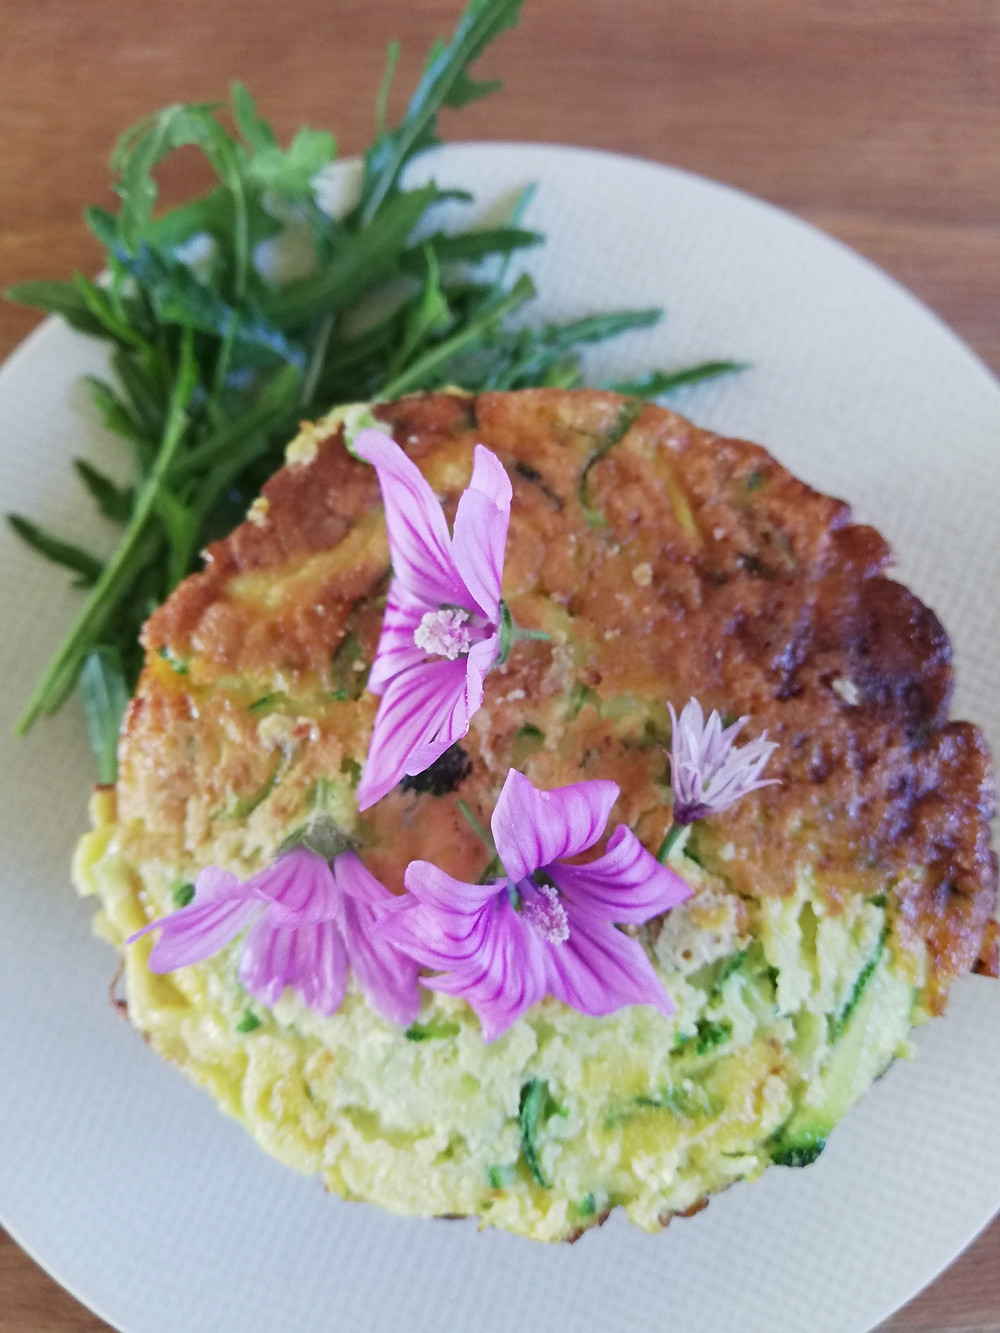 Zucchini Fritters by Foodie in Pce